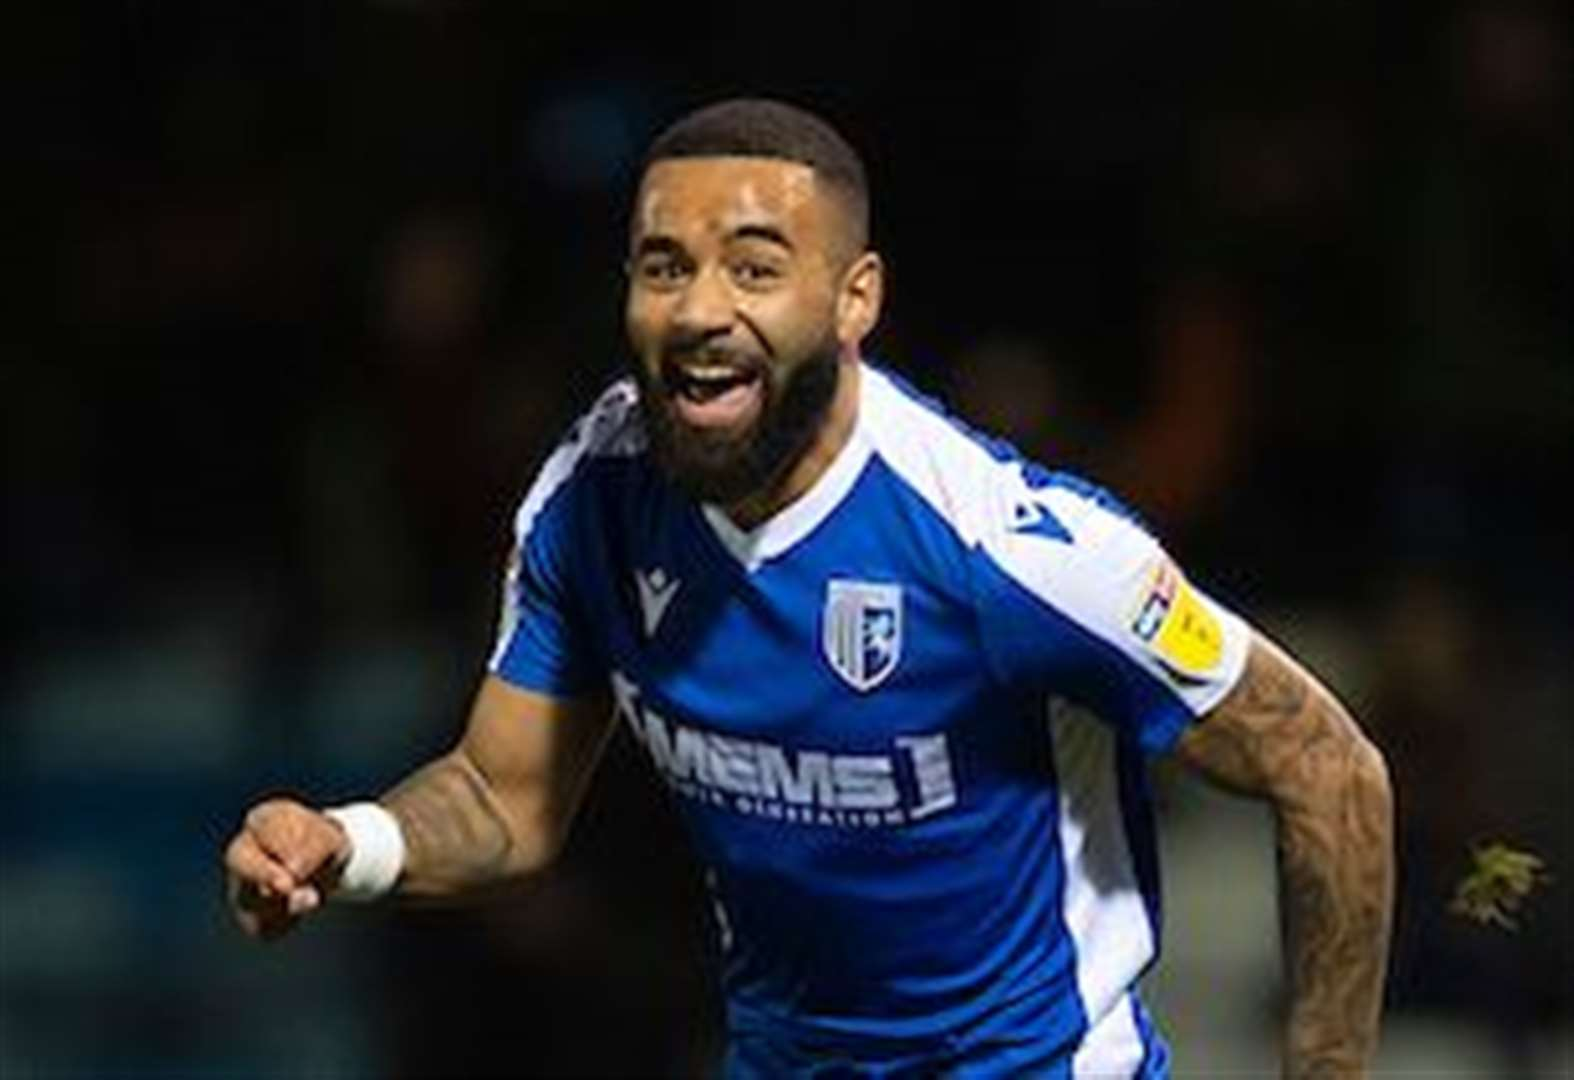 Report: Jakubiak bags late point for the Gills